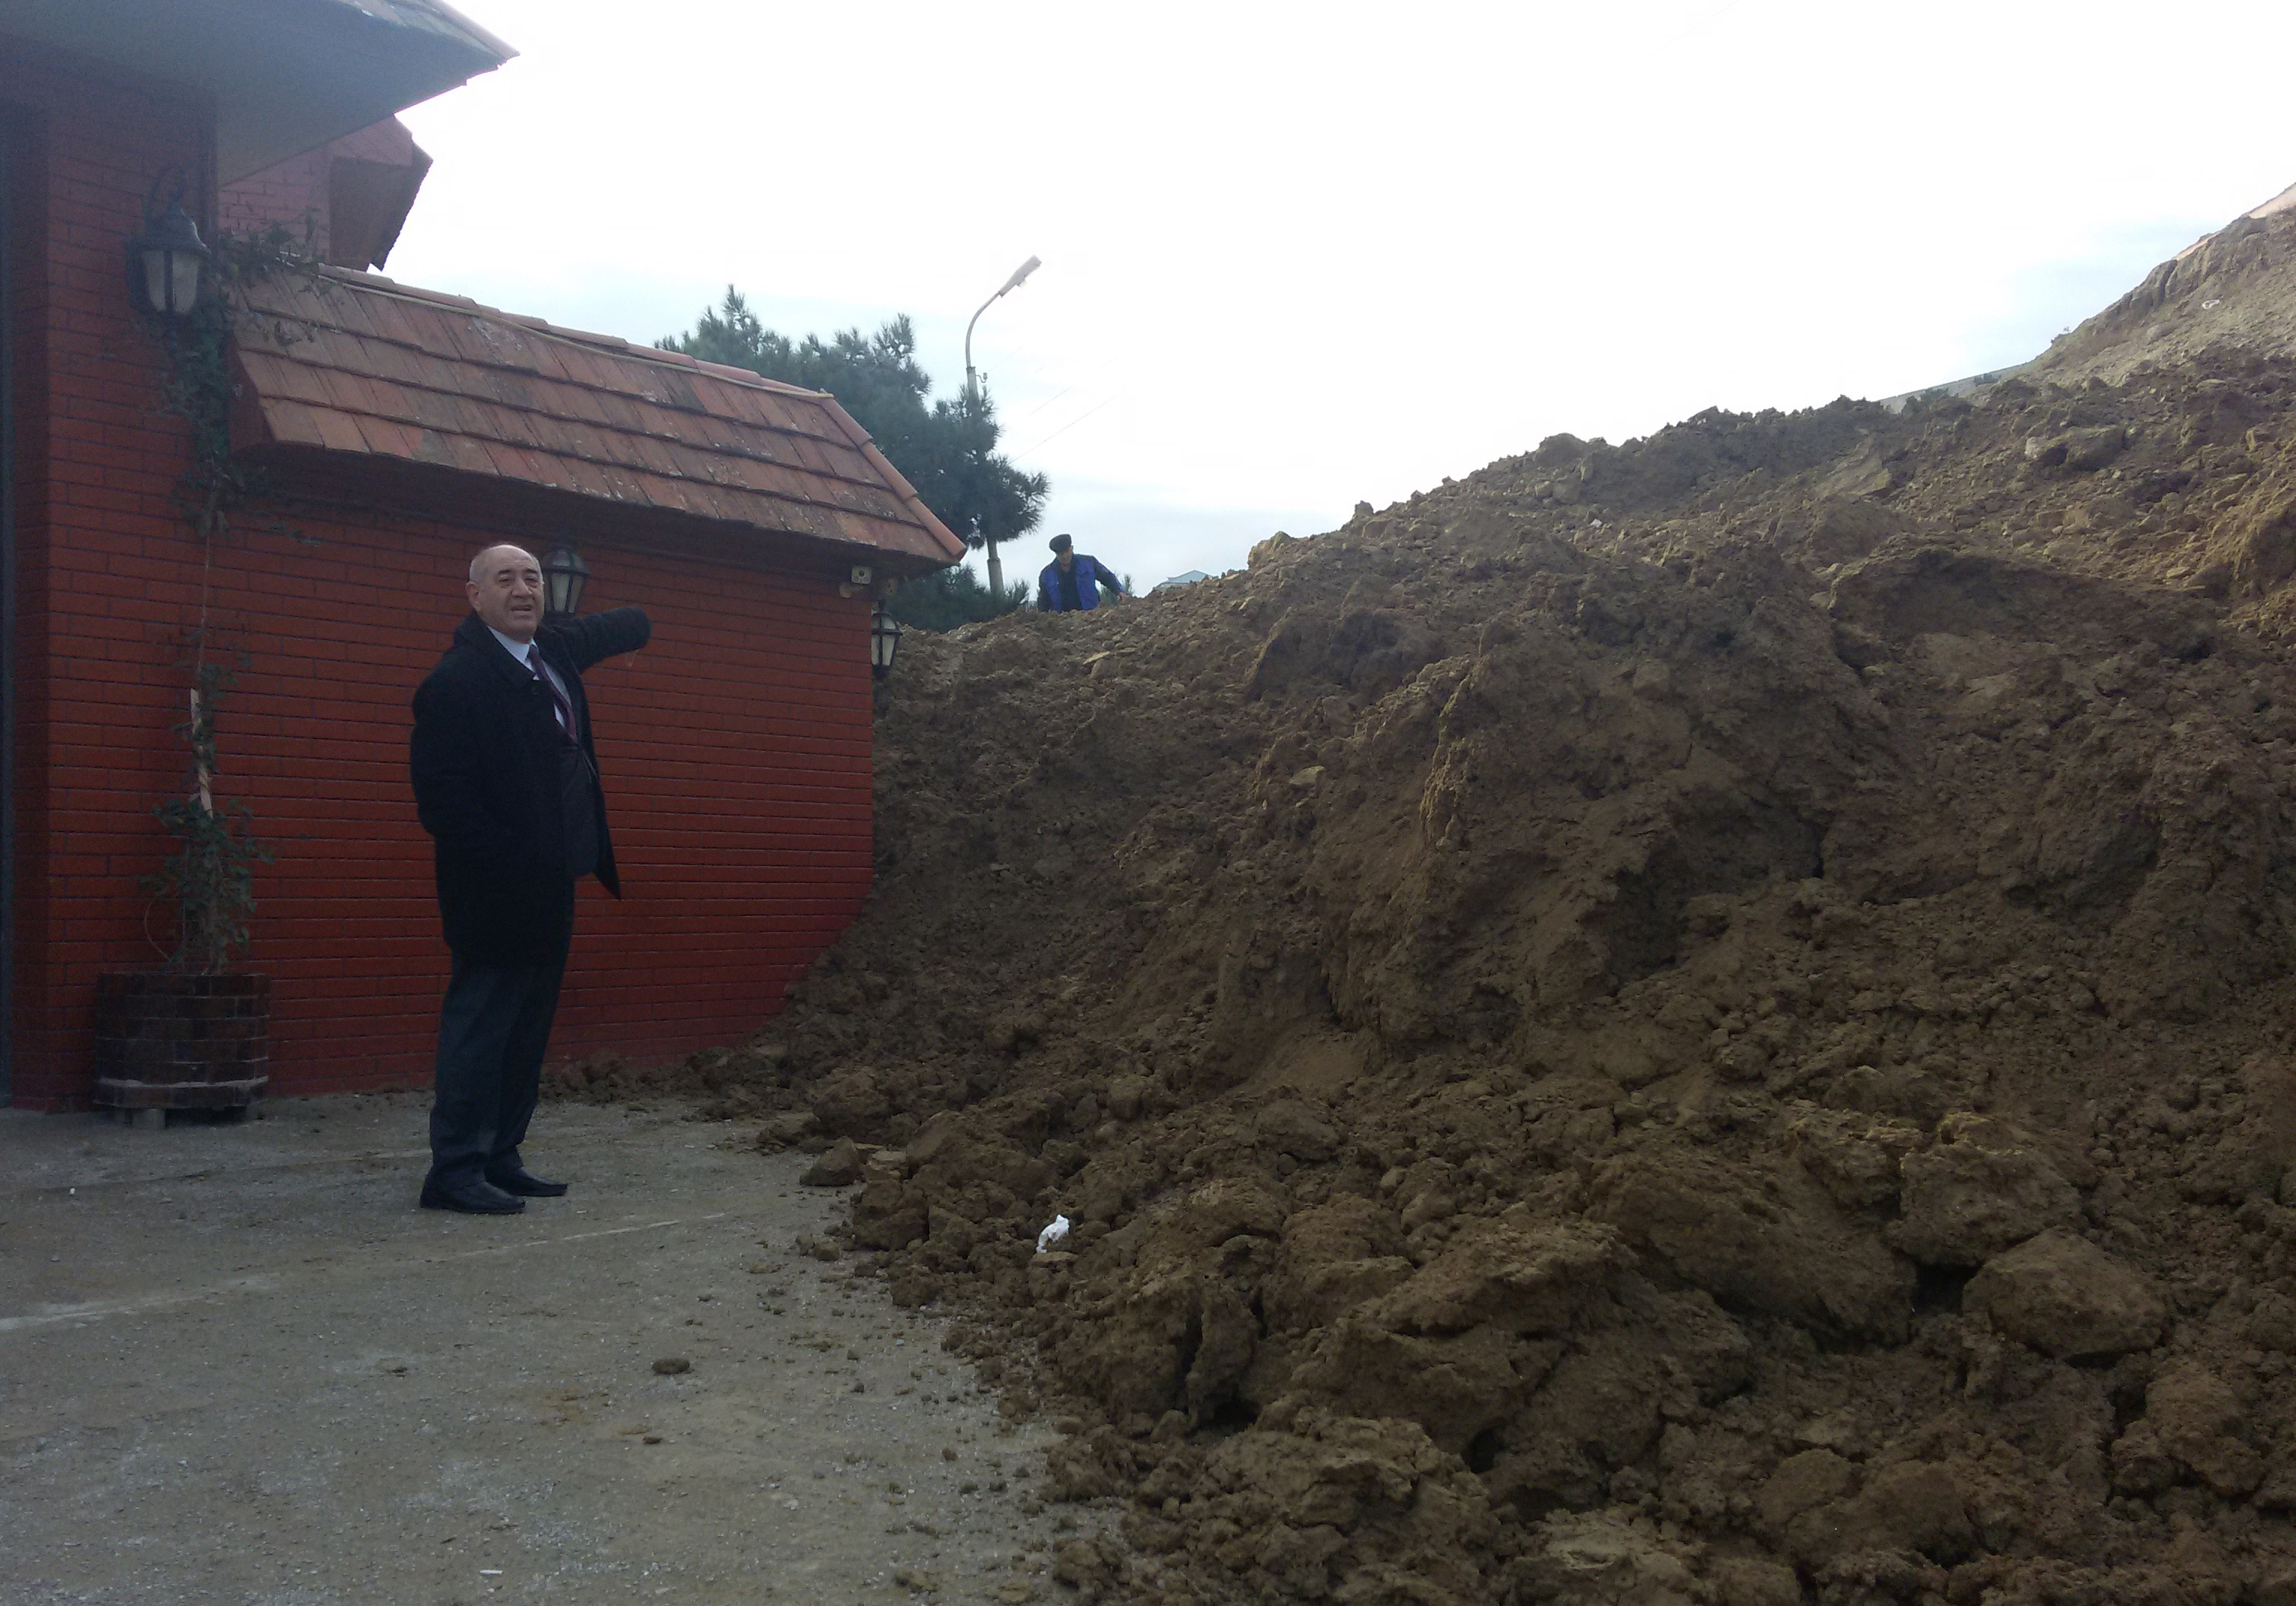 Under the direction of the general director of the RSSC, an inspection of the landslide zone in Badamdar was carried out